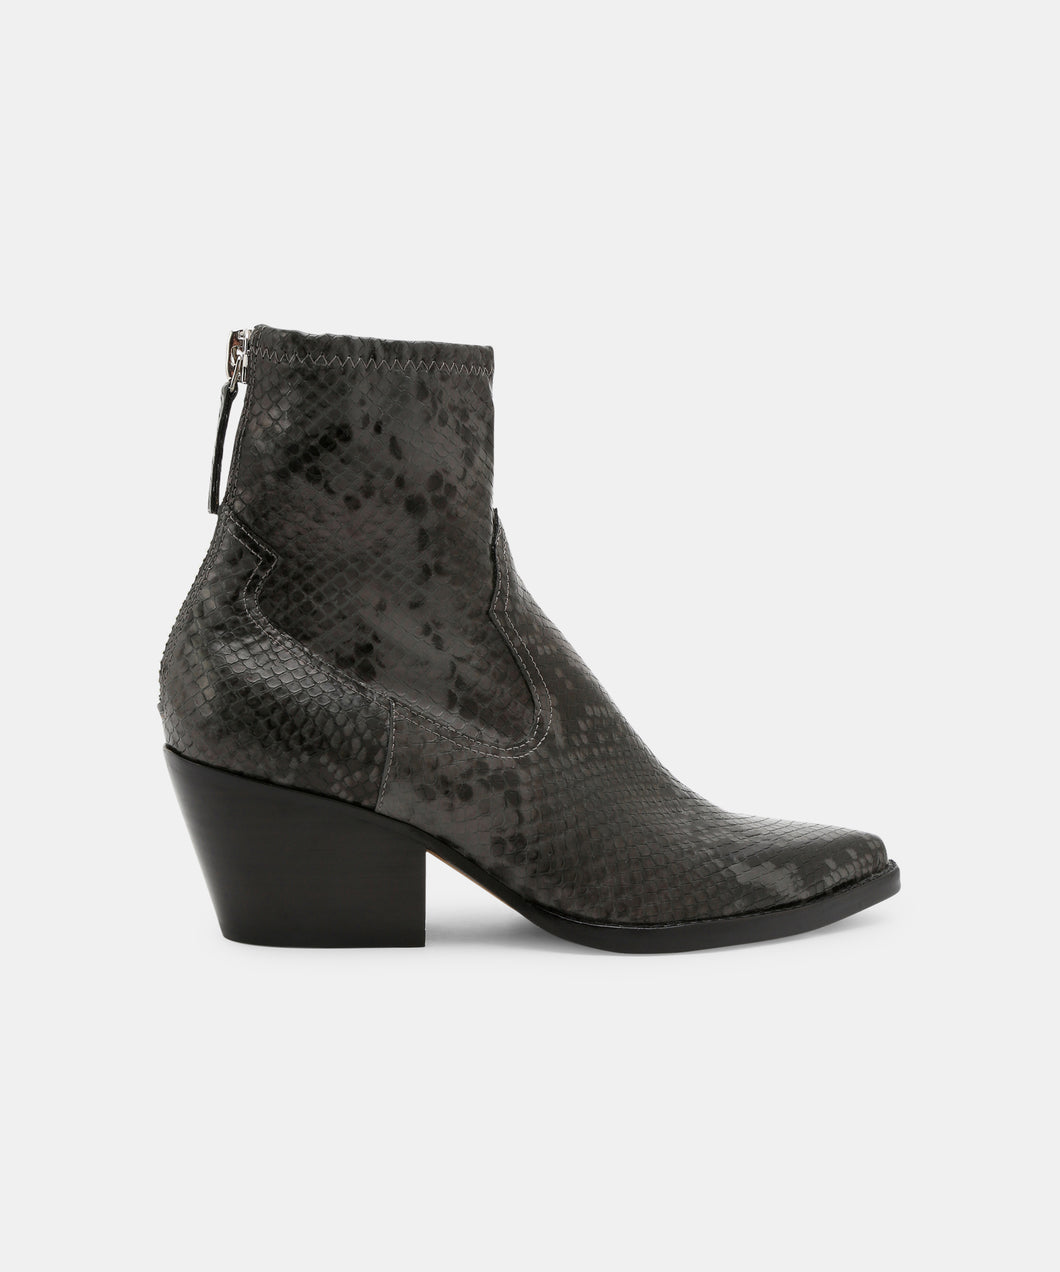 SHANTA BOOTIES IN GRAPHITE -   Dolce Vita